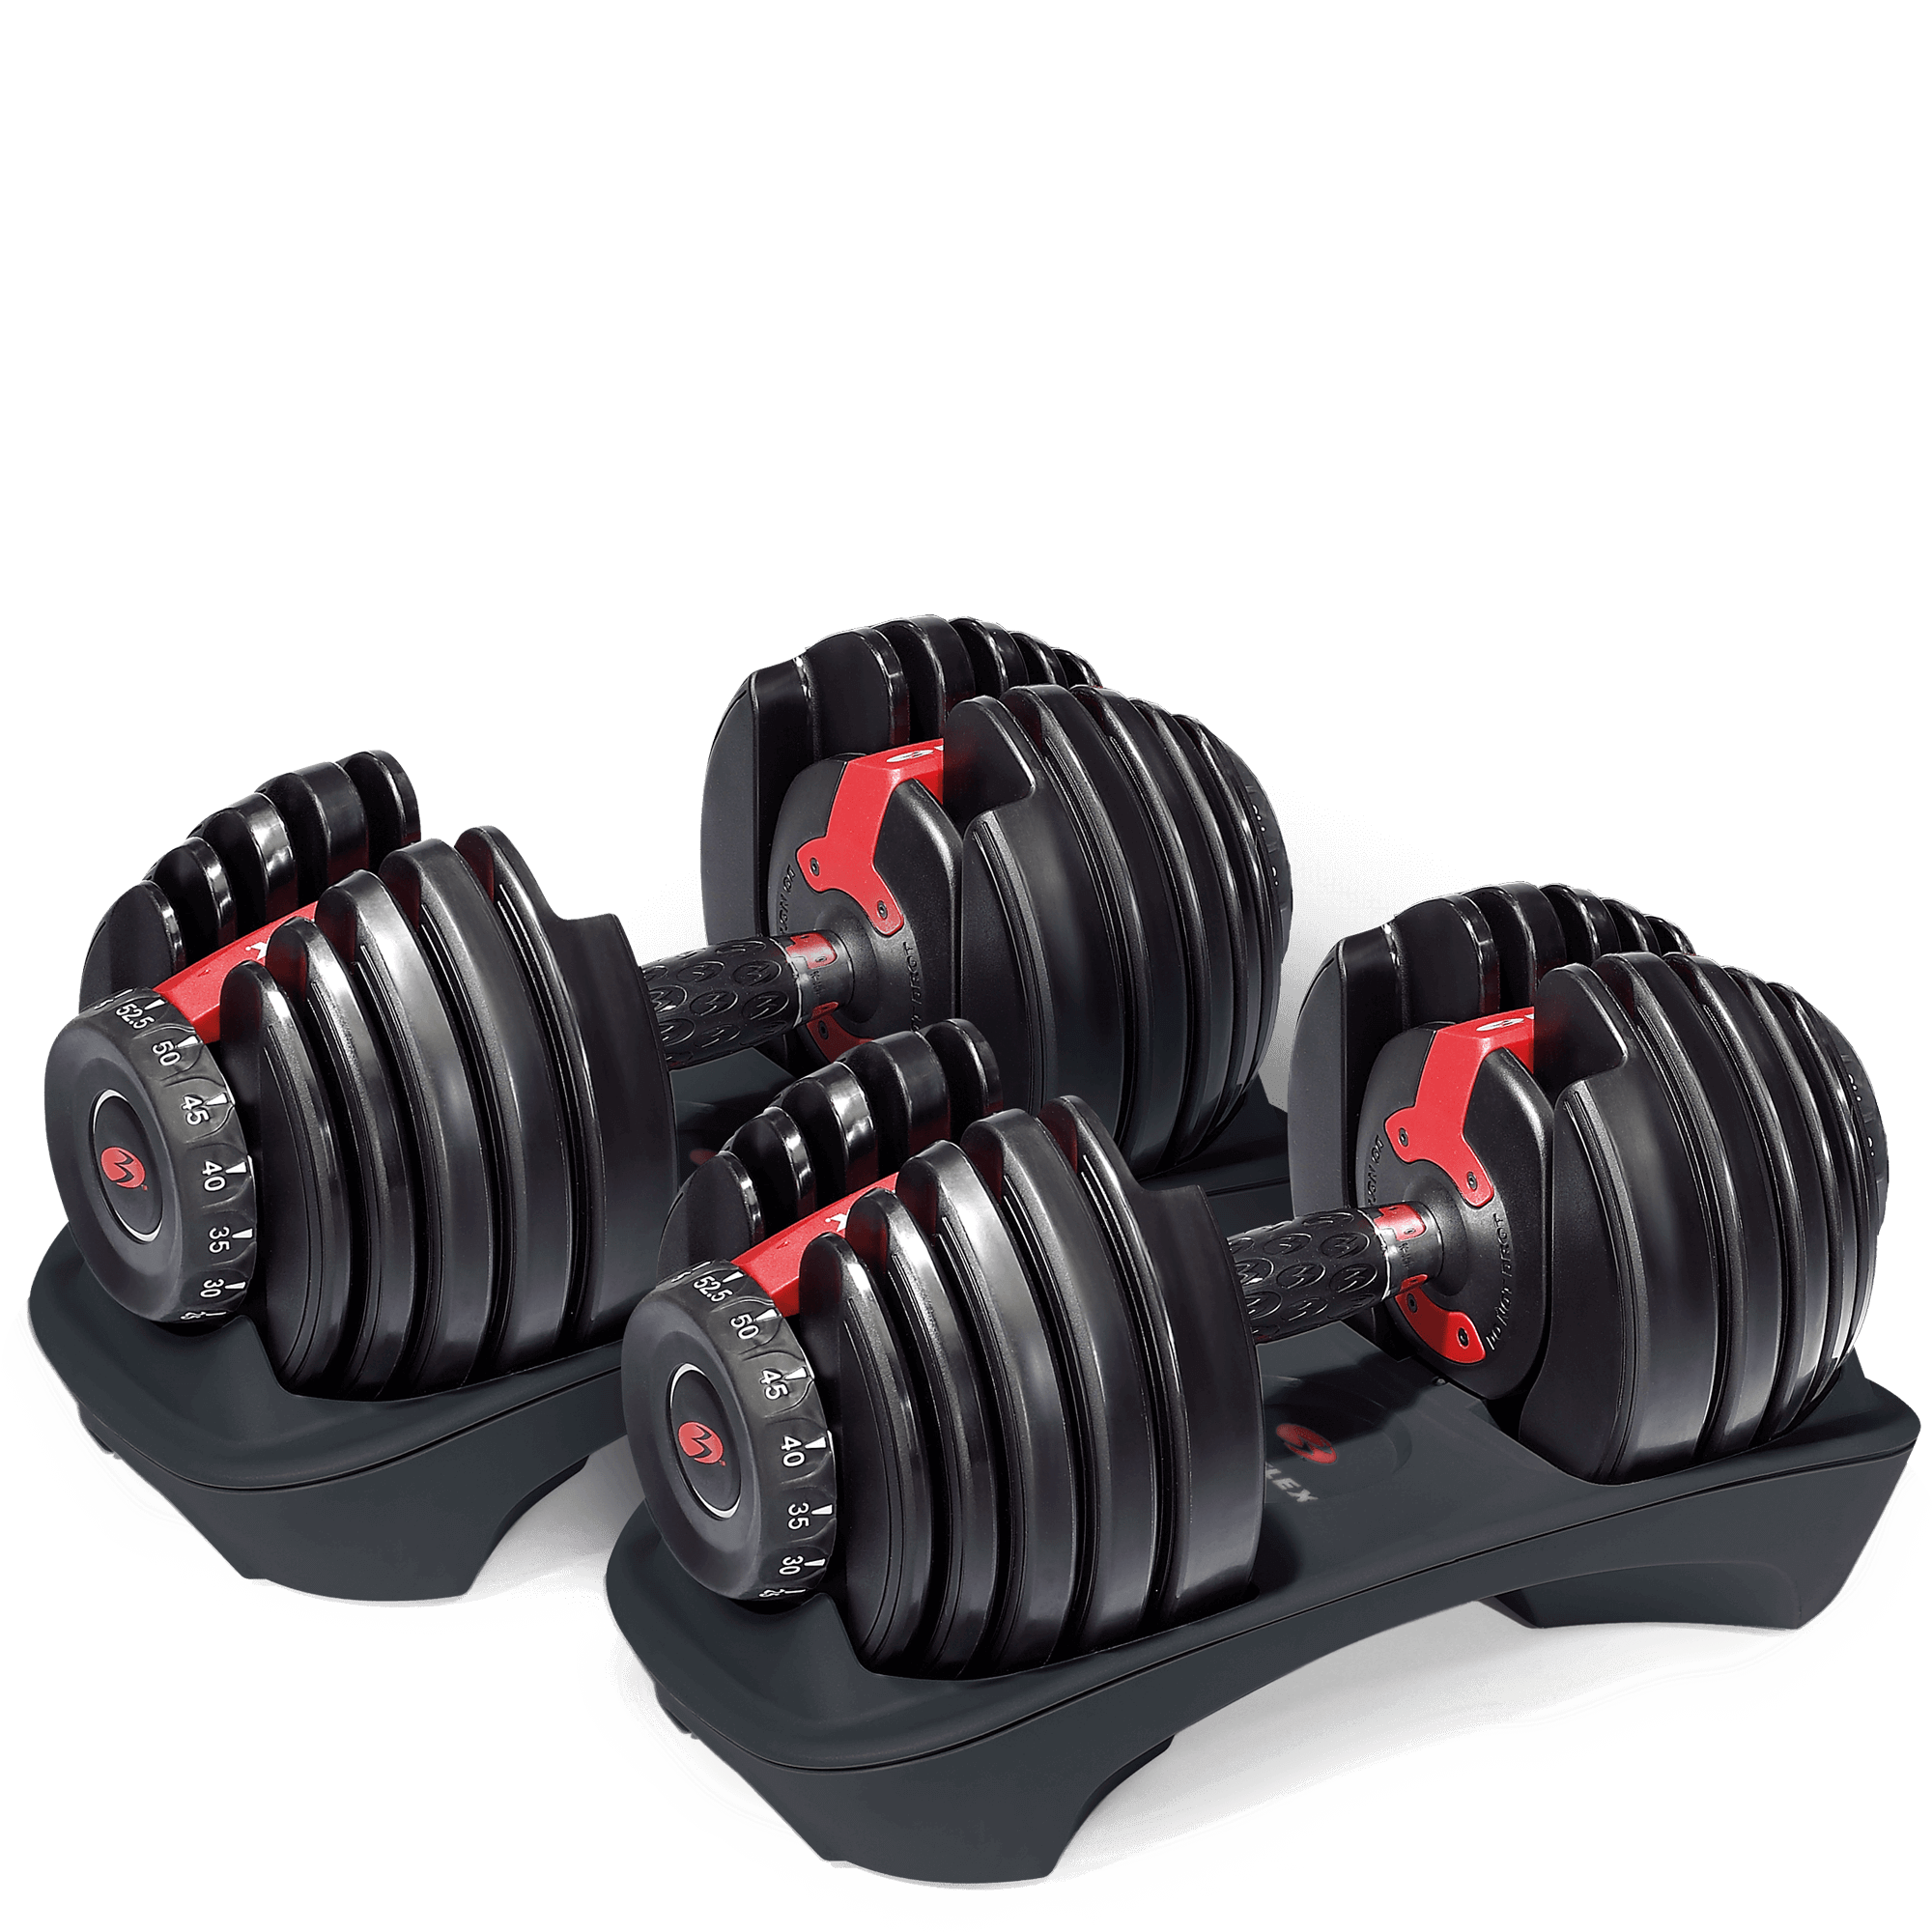 18 Best Fitness Gifts For Dad S Workout On Father S Day 2020